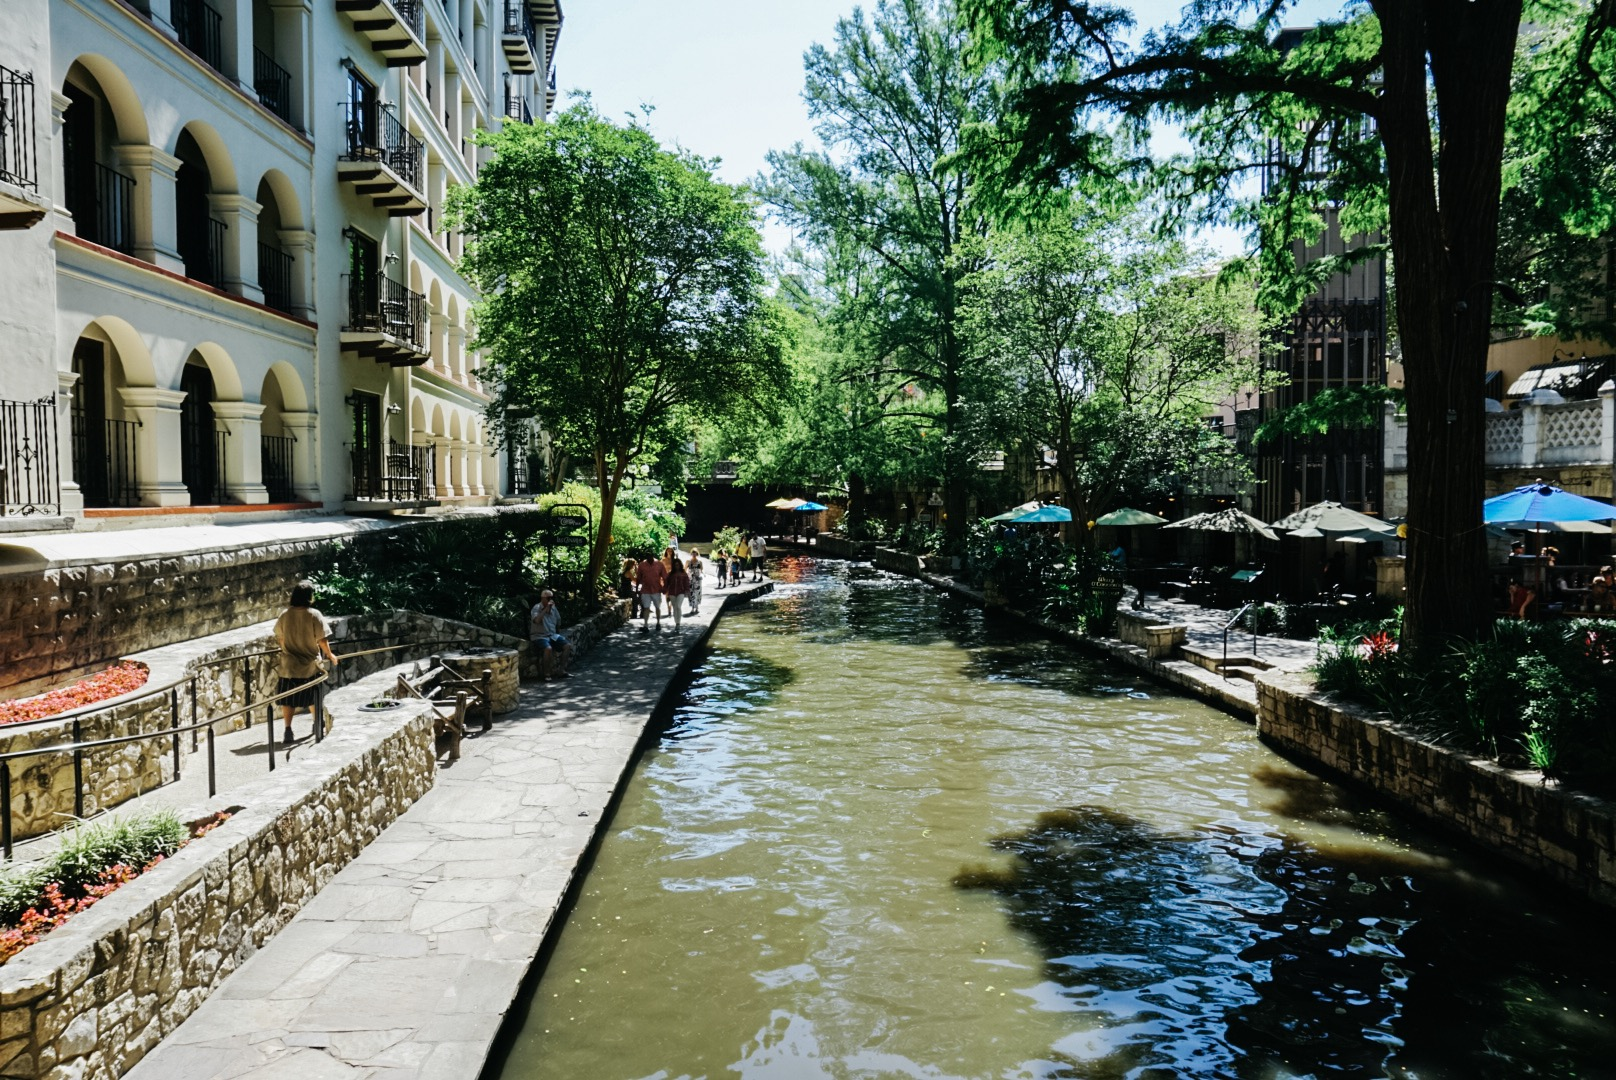 The River Walk -- this photo really belongs in the last vlog post, but what the heck let's just include it here.